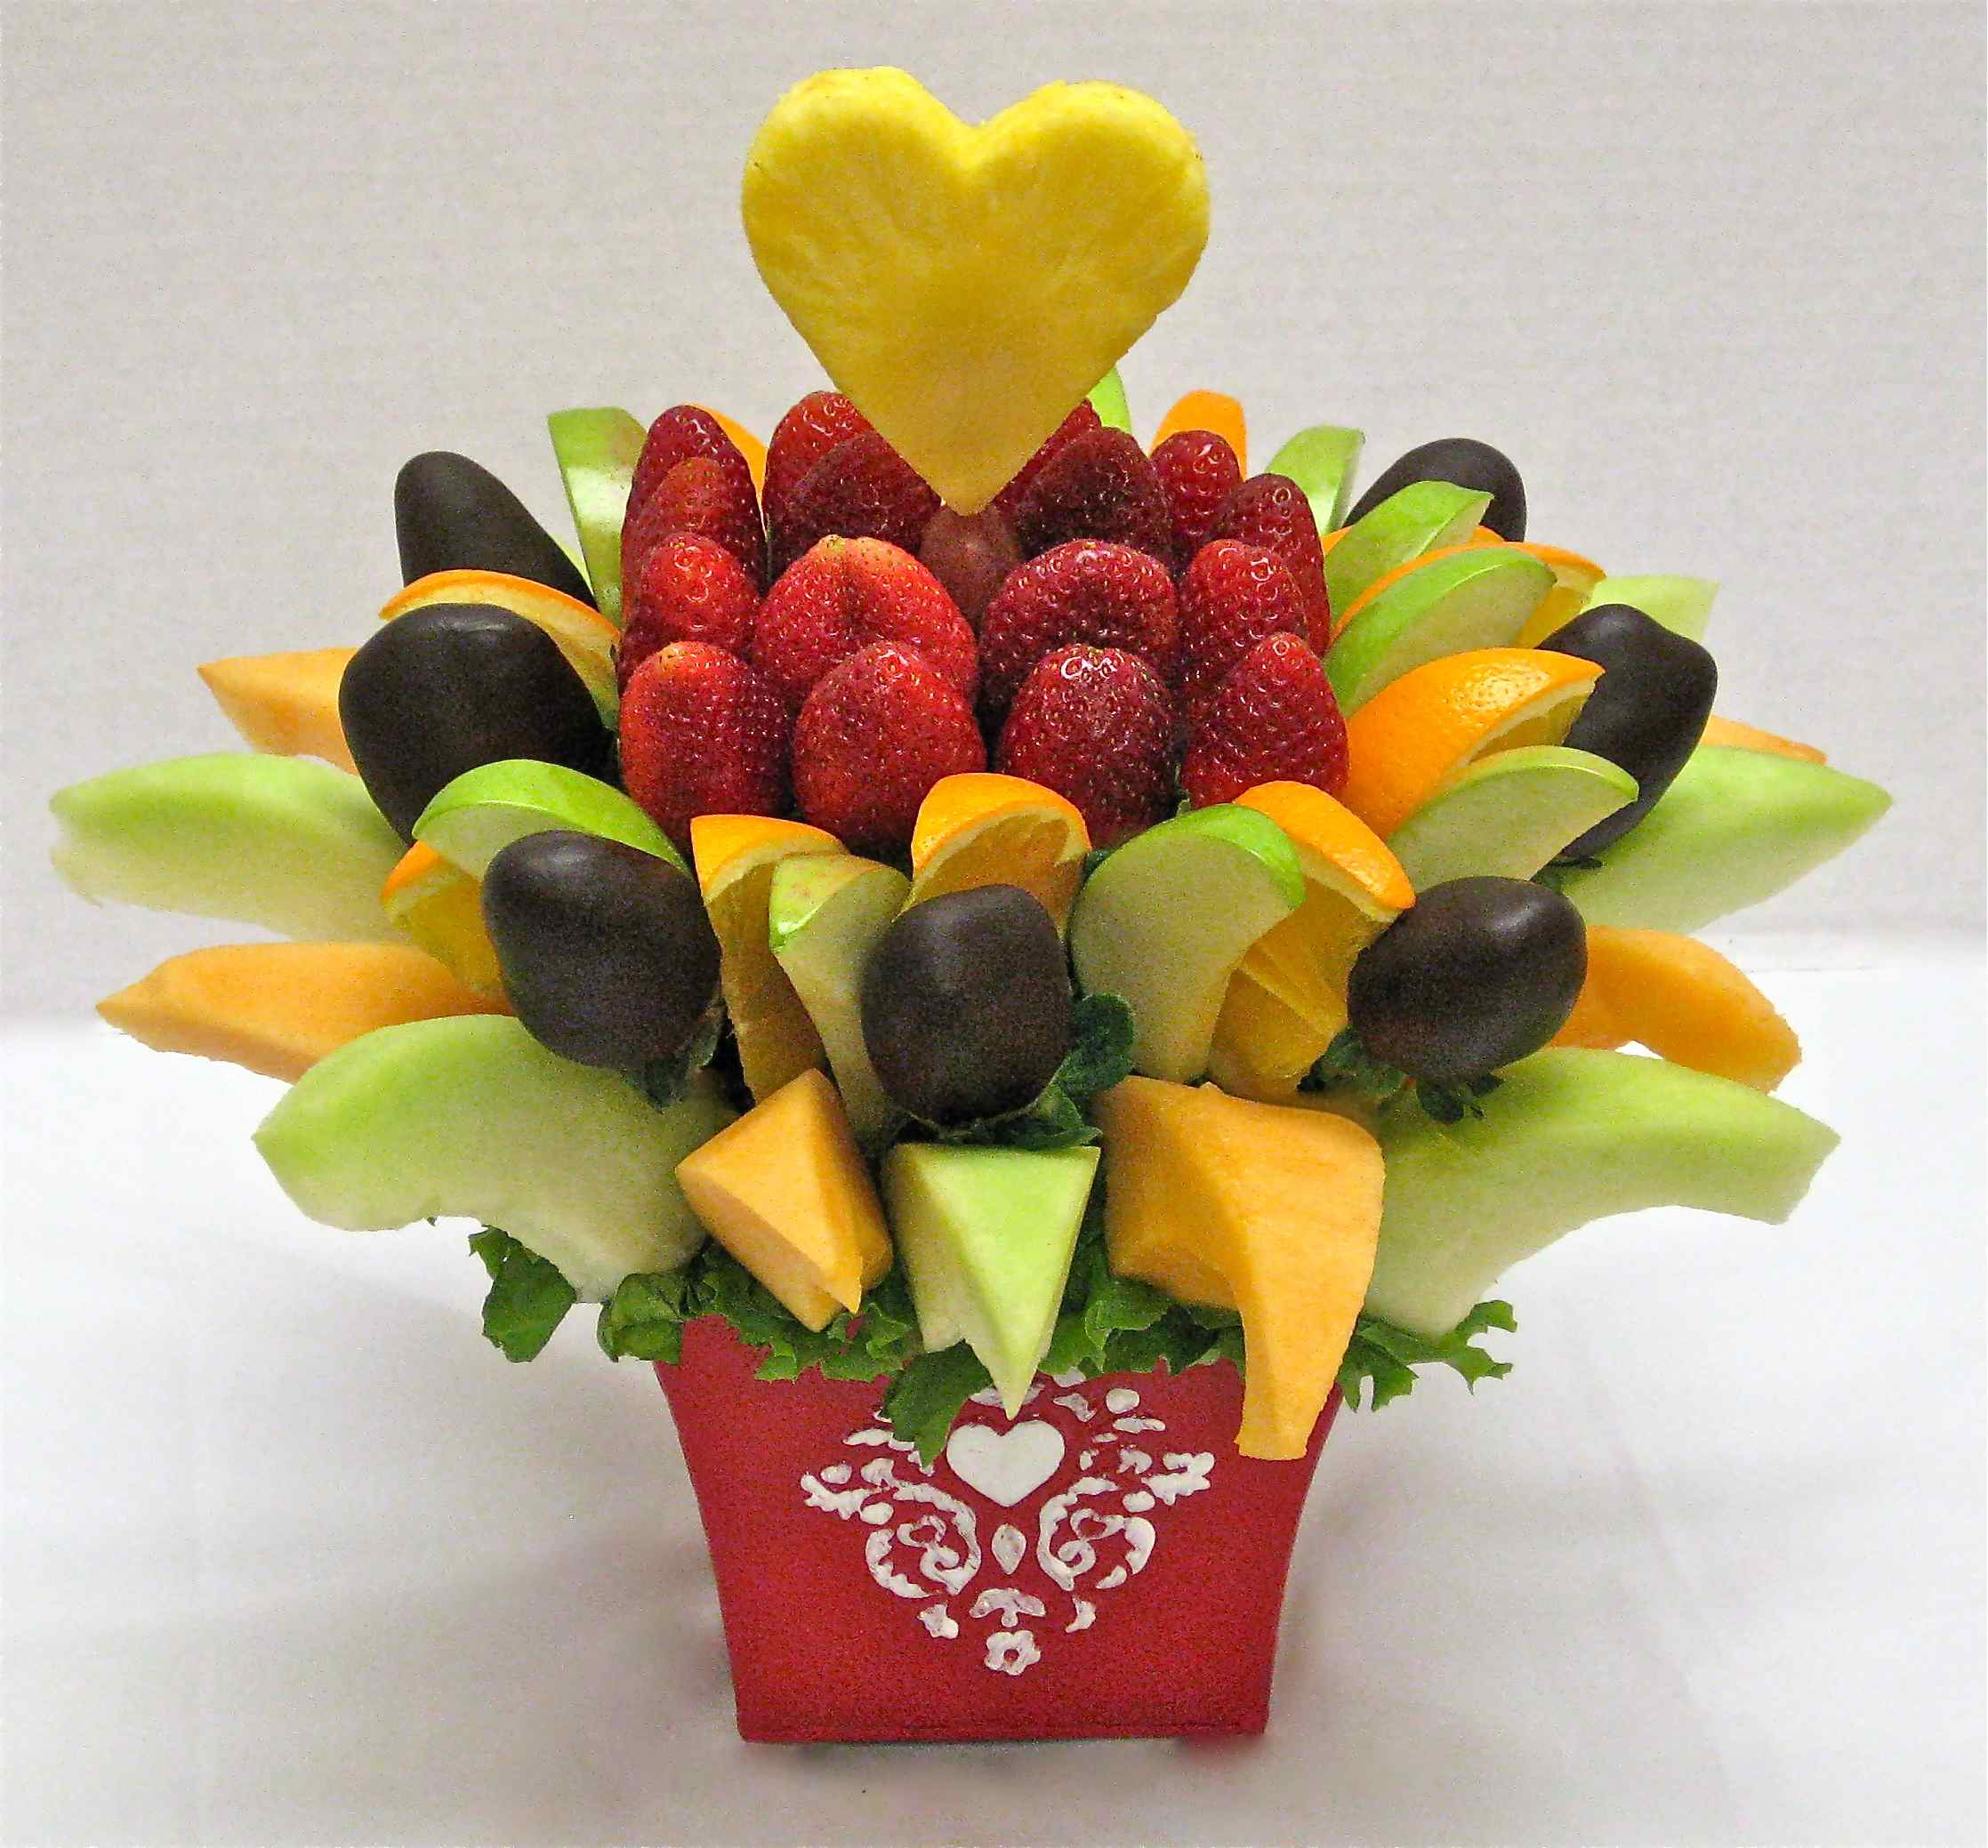 How To Make A Do It Yourself Edible Fruit Arrangement Crazeedaisee